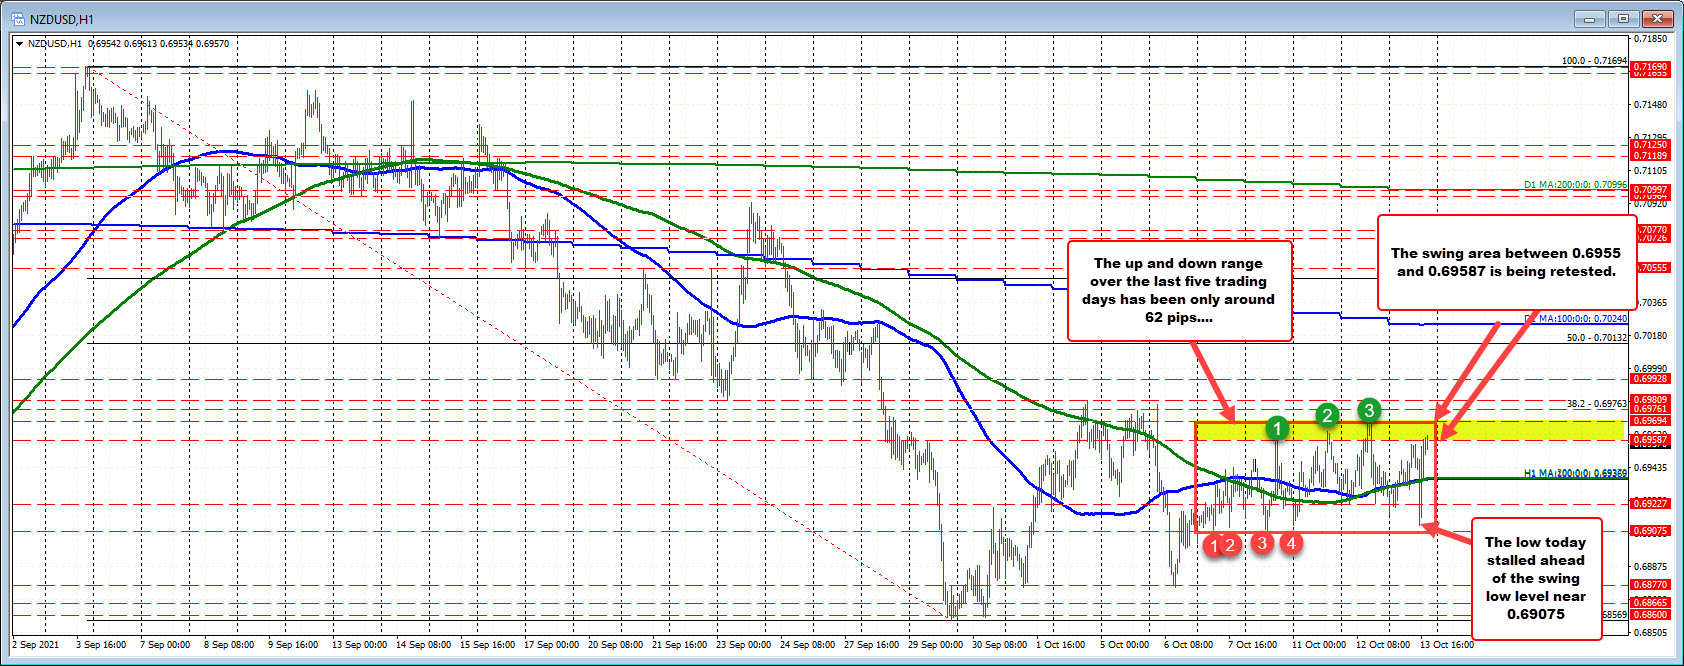 NZDUSD moves up toward the high of the up/down trading range over the last week